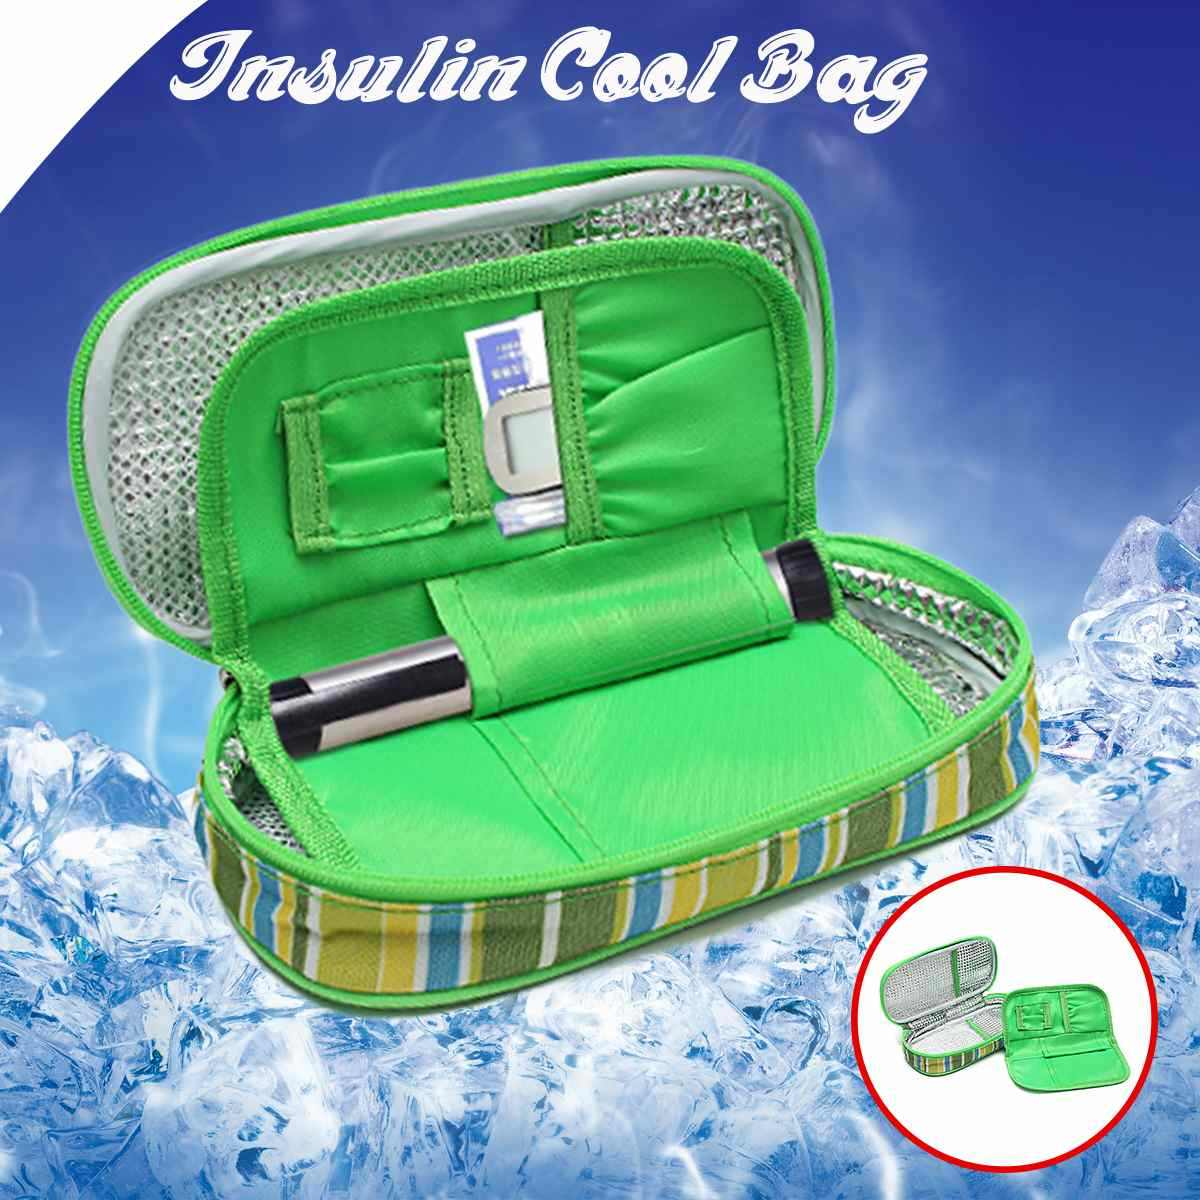 2-Layer Draagbare Geneeskunde Diabetische Insuline Cooling Pouch Koeler Ice Pack Bag Travel Case